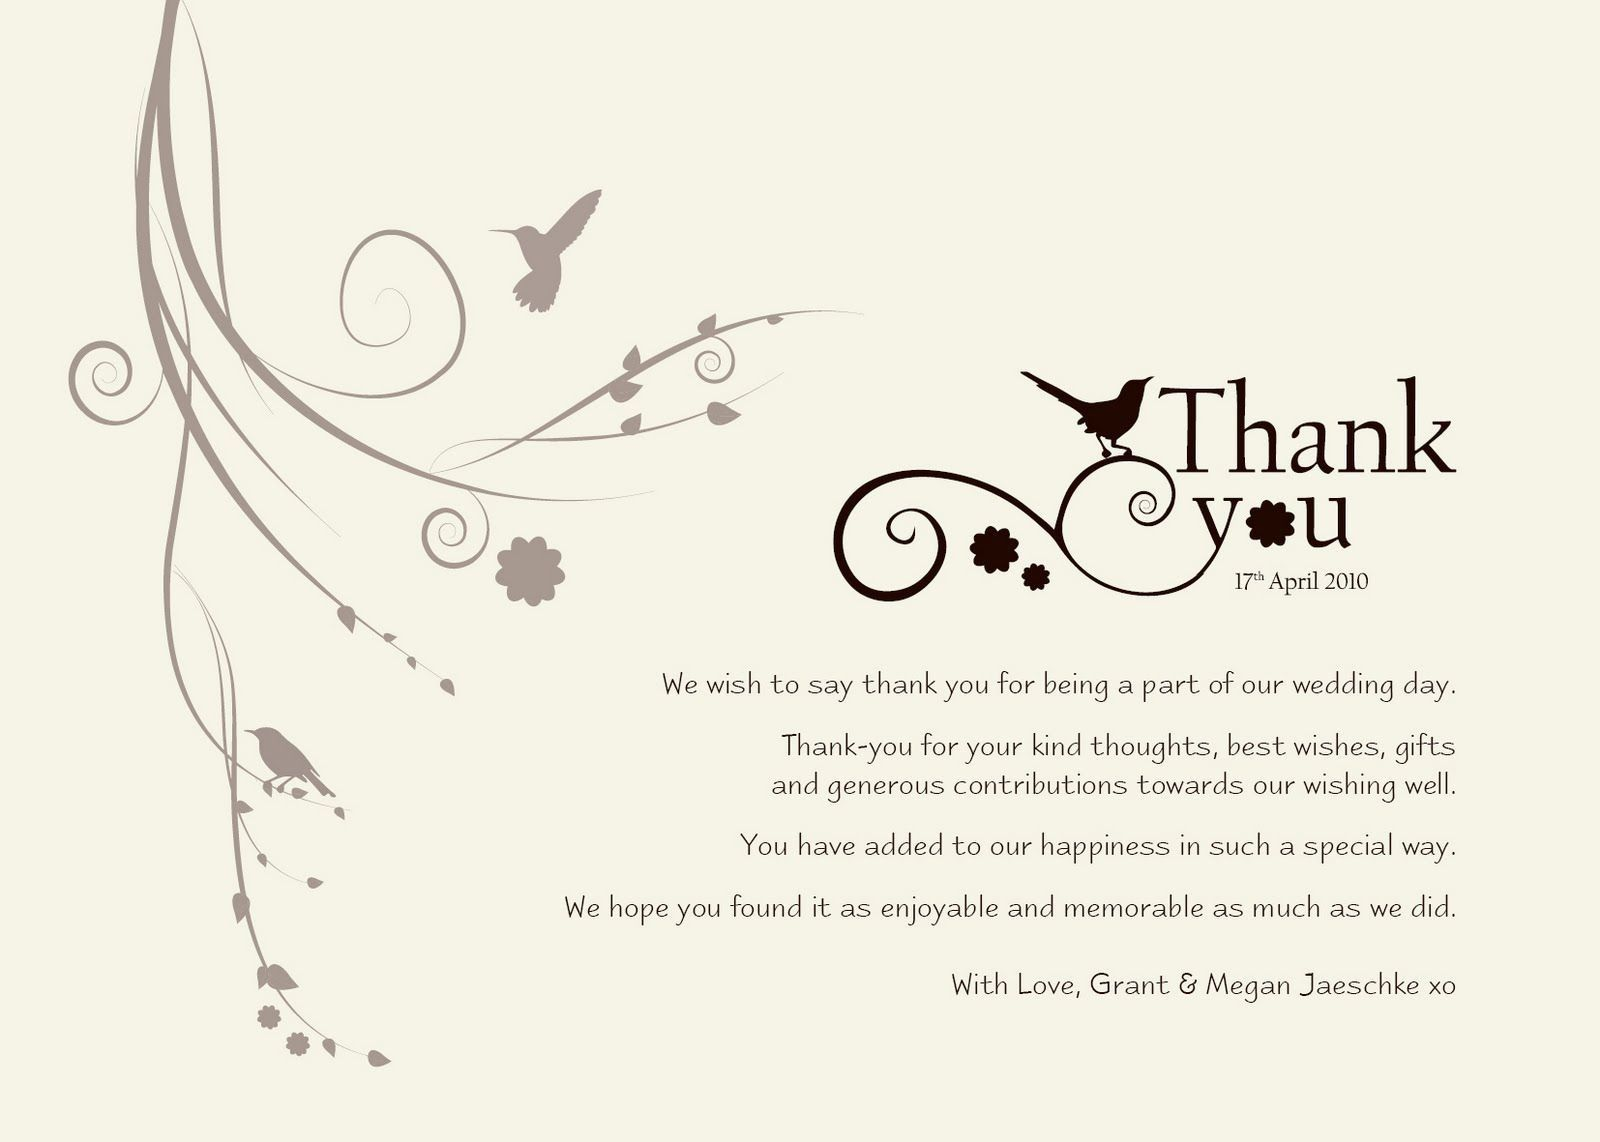 003 Astounding Wedding Thank You Card Template High Definition  Message Sample Free Download Wording For MoneyFull